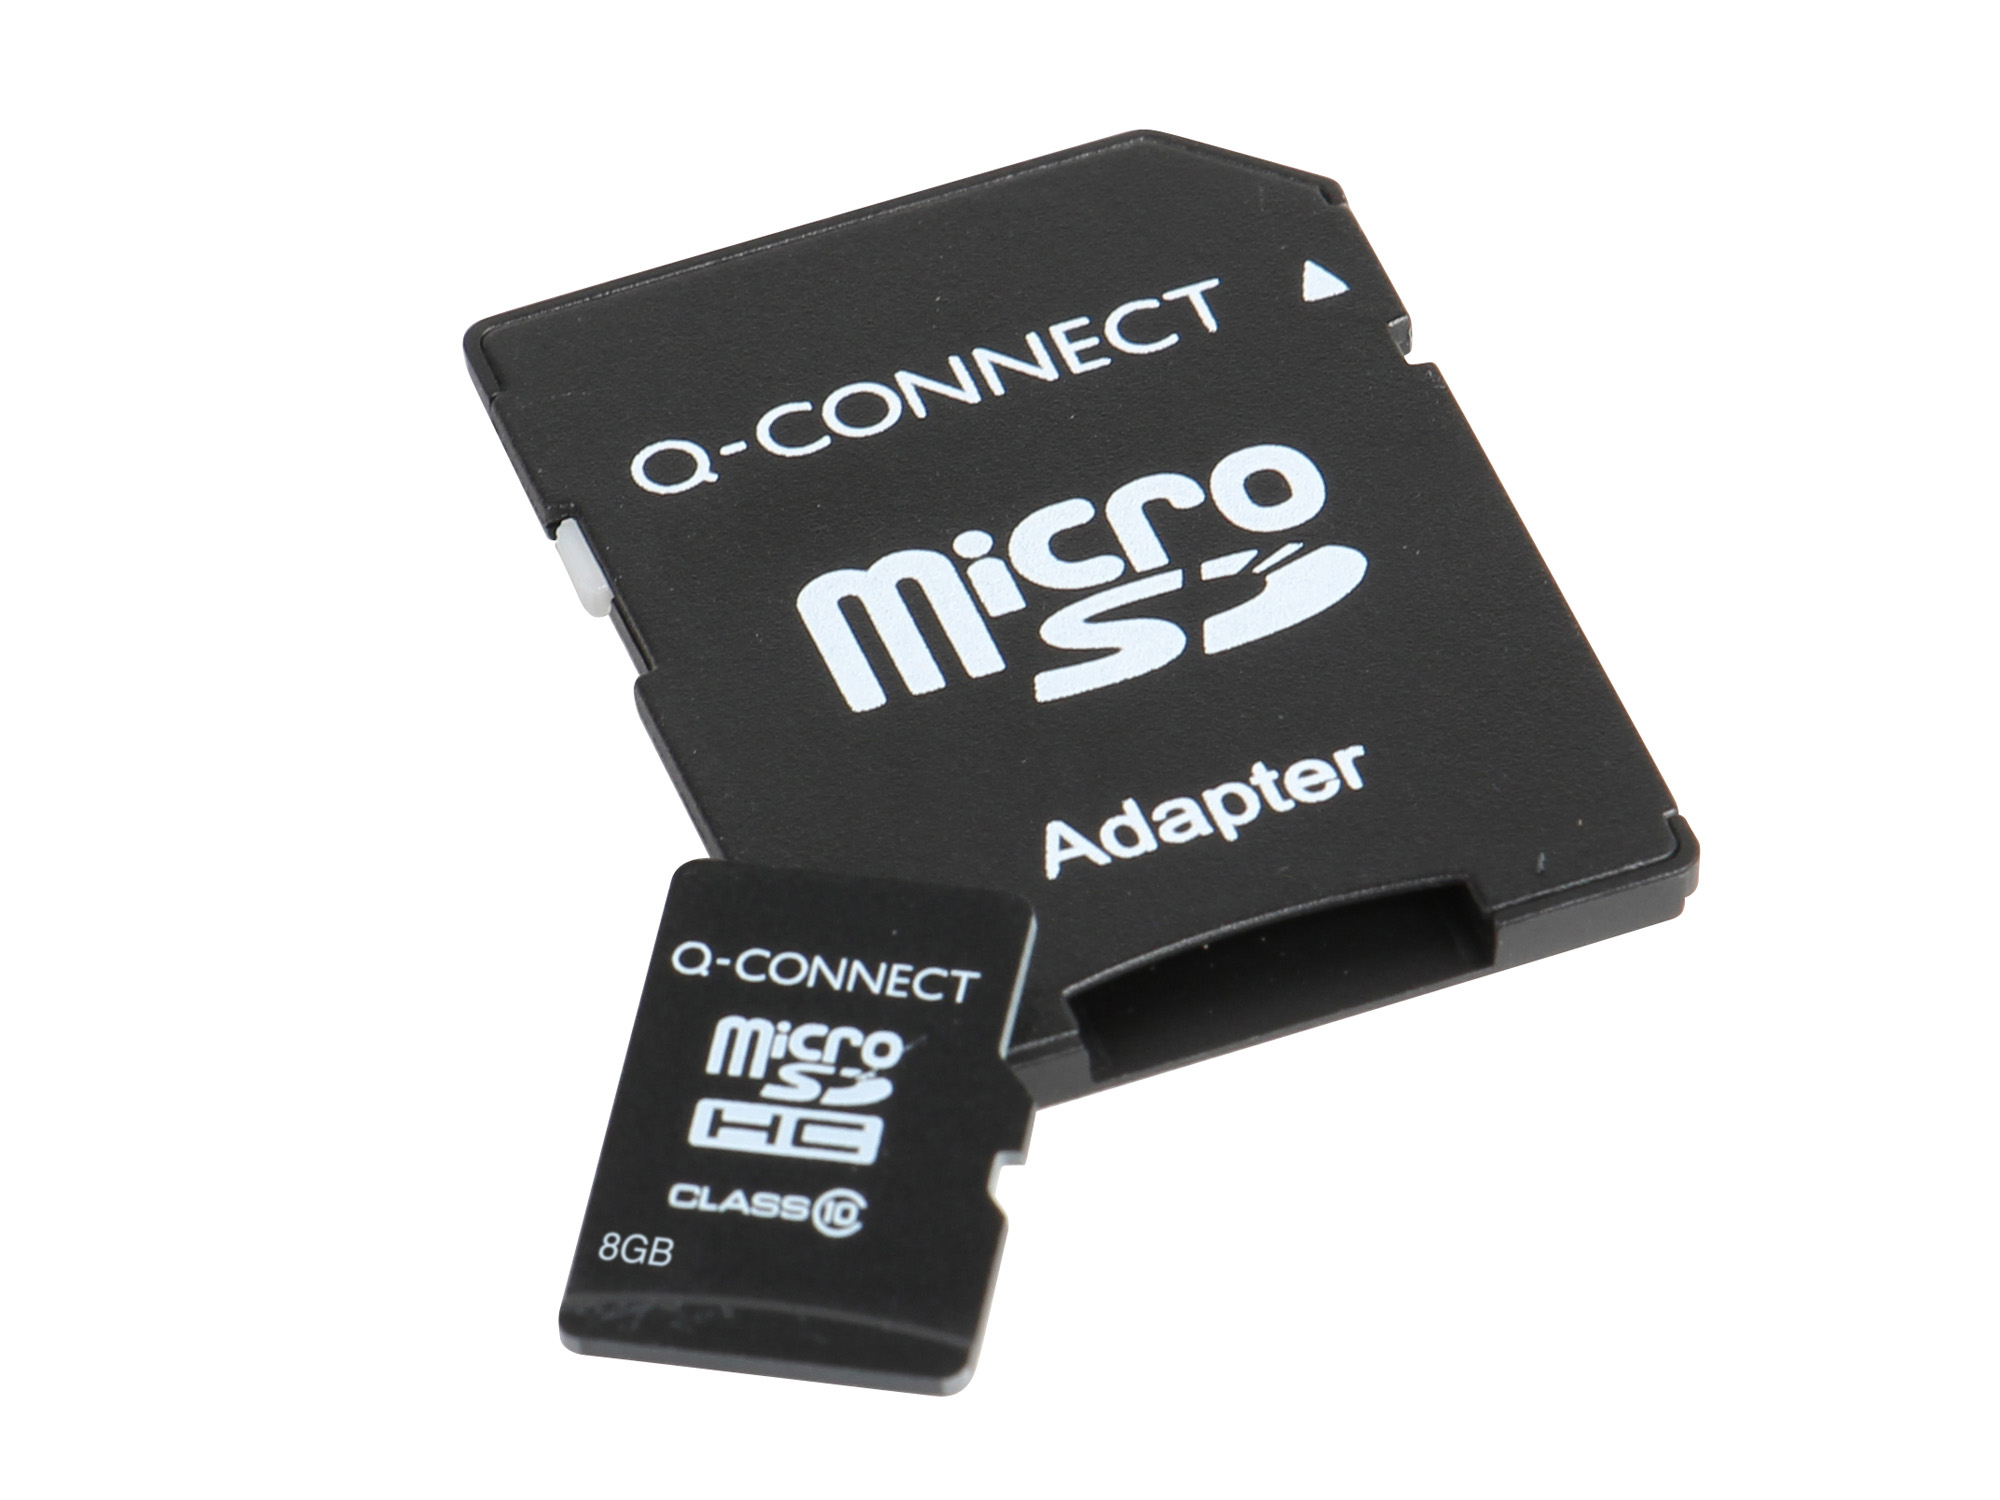 How to connect a memory card